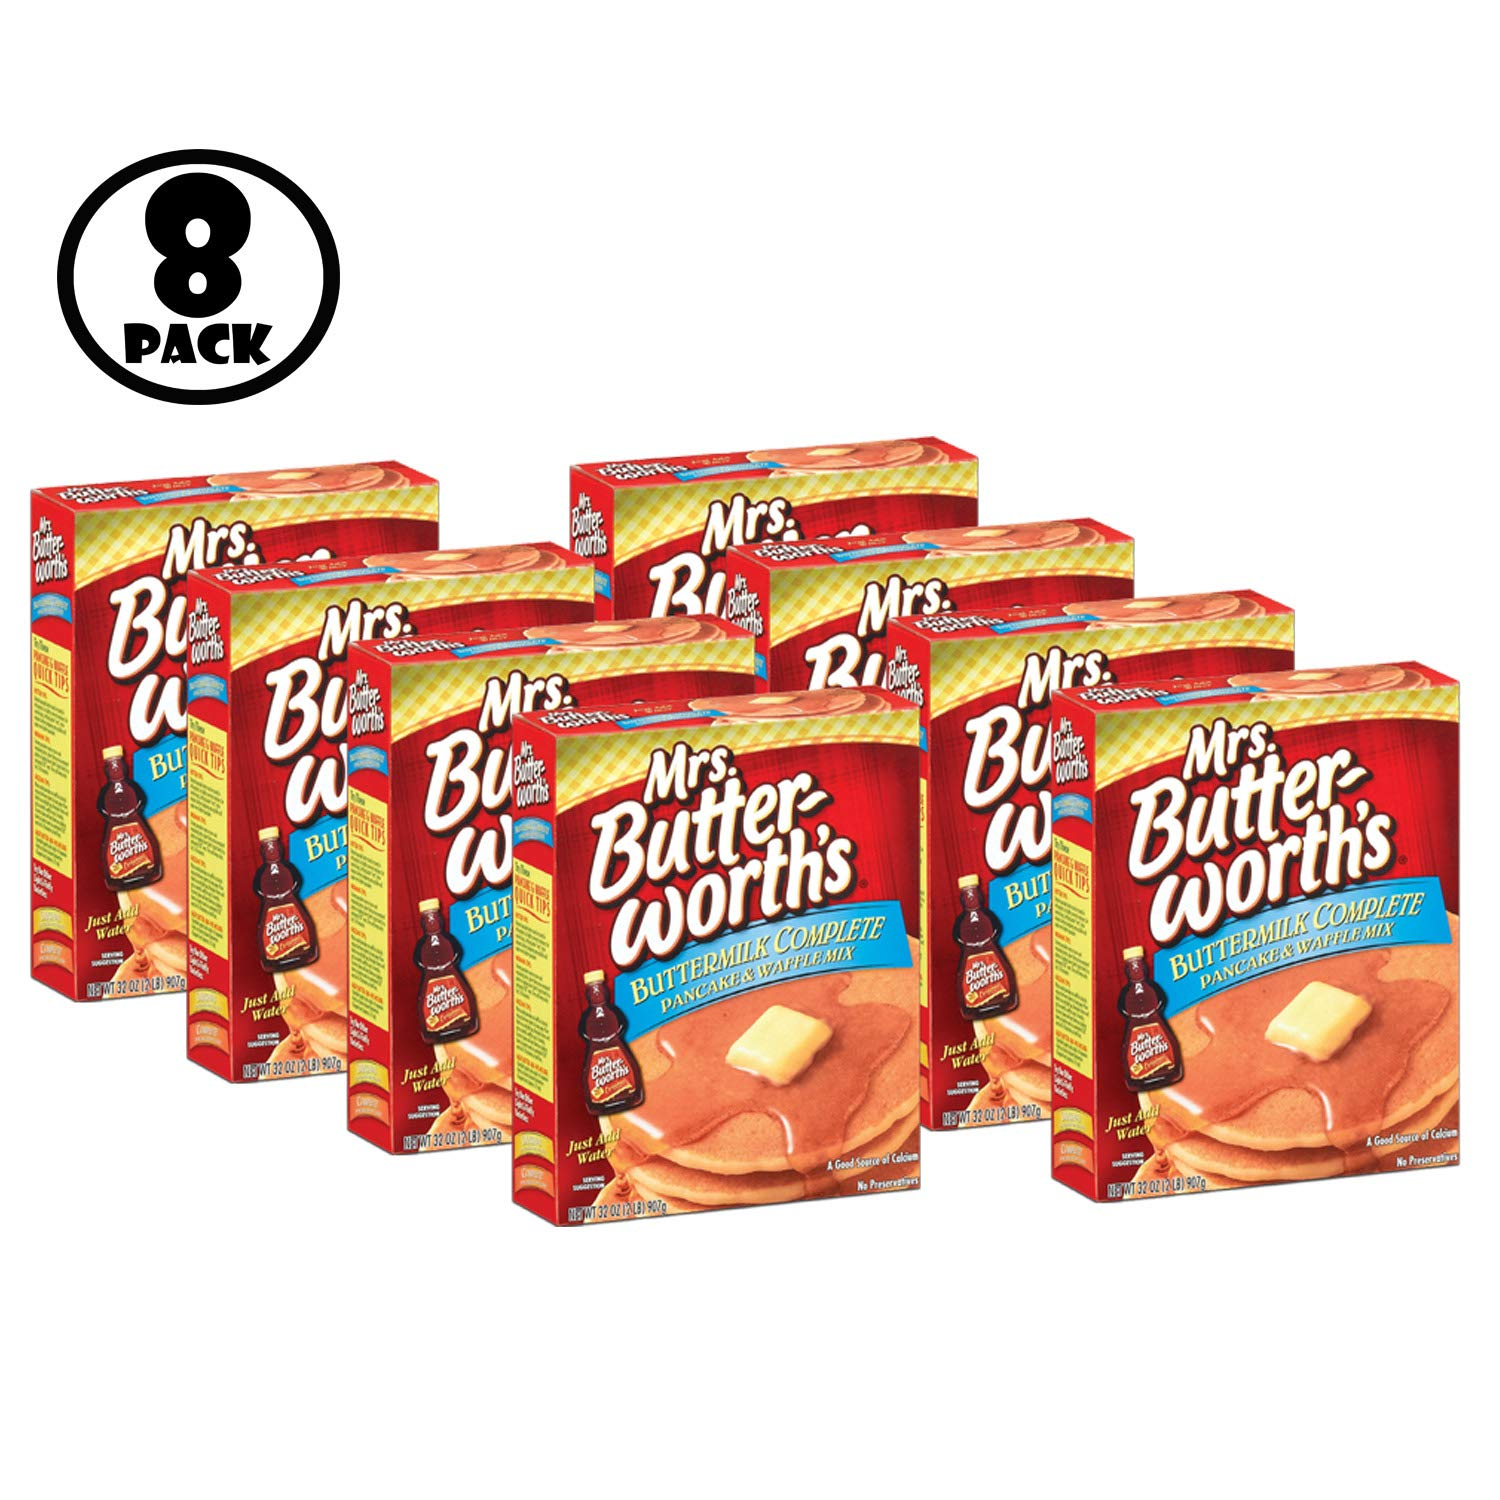 (Pack of 8) MRS. BUTTER-WORTH'S Buttermilk Complete Pancake & Waffle Mix, 32 oz